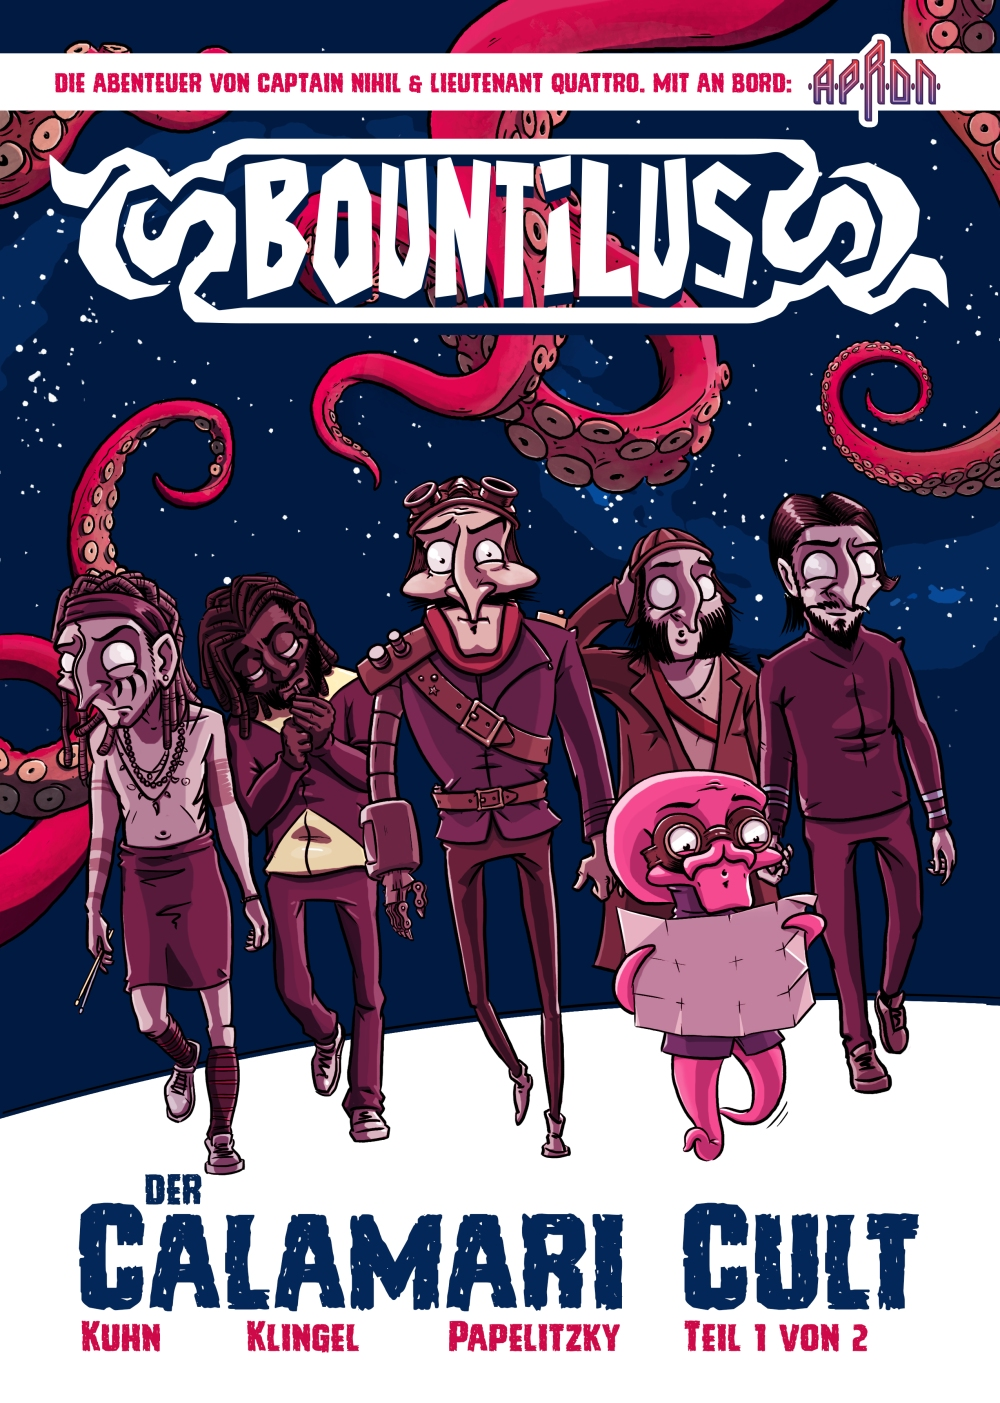 BOUNTILUS_CalamariCult1_Cover